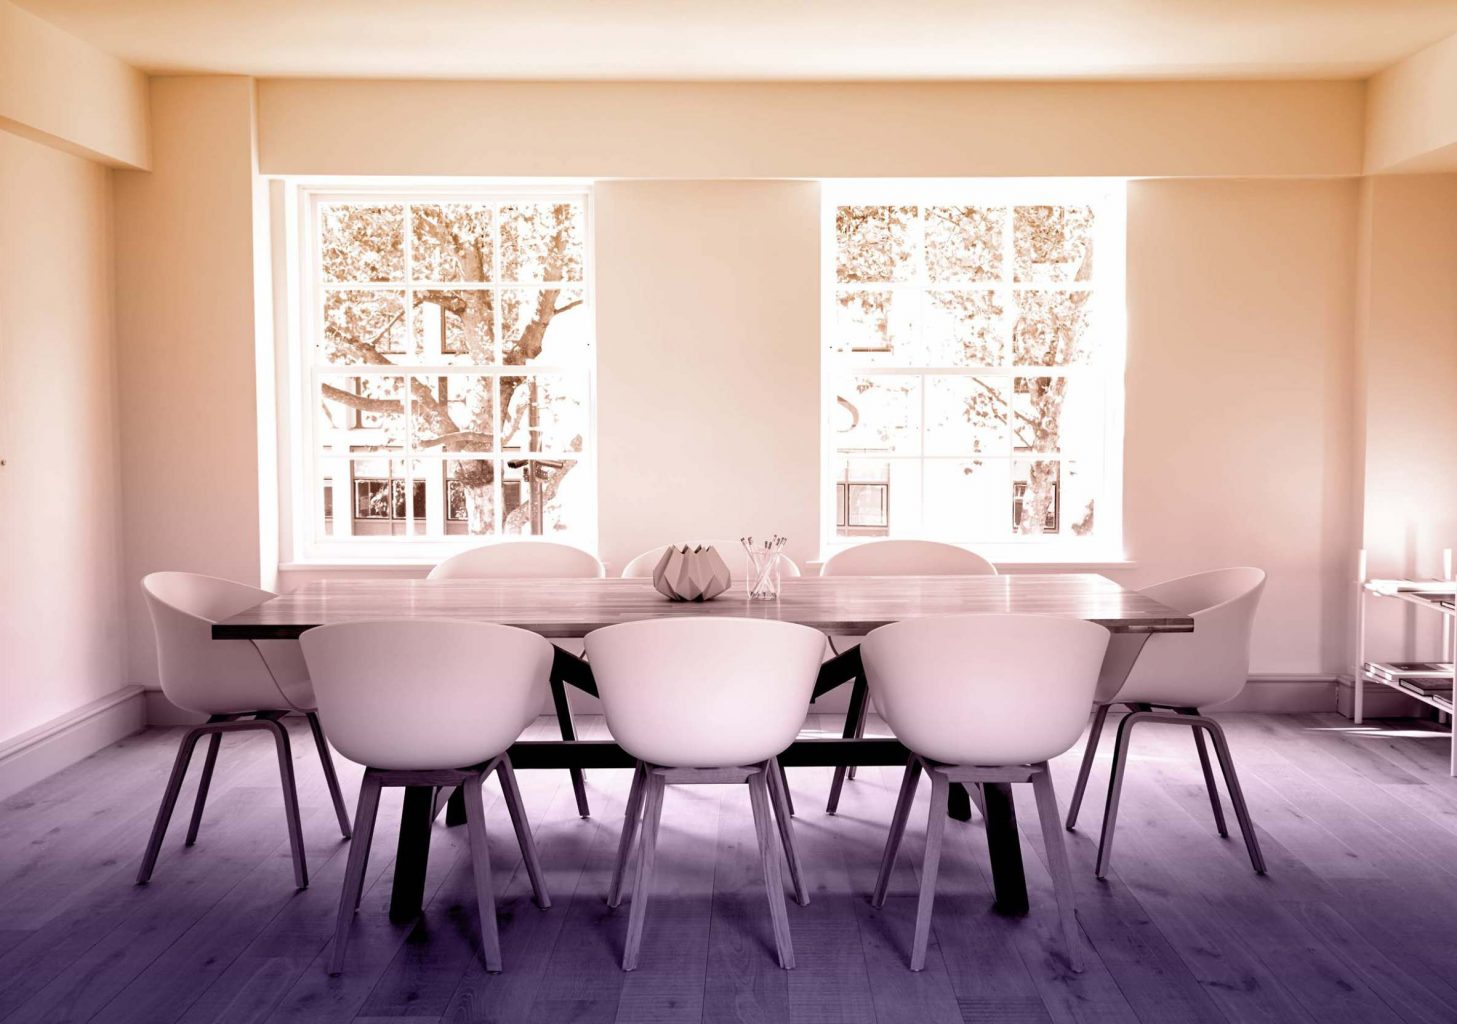 How to Make Older Home Windows More Energy Efficient - Home Window Tinting for Energy Efficiency in Iowa City and the Quad Cities of Iowa